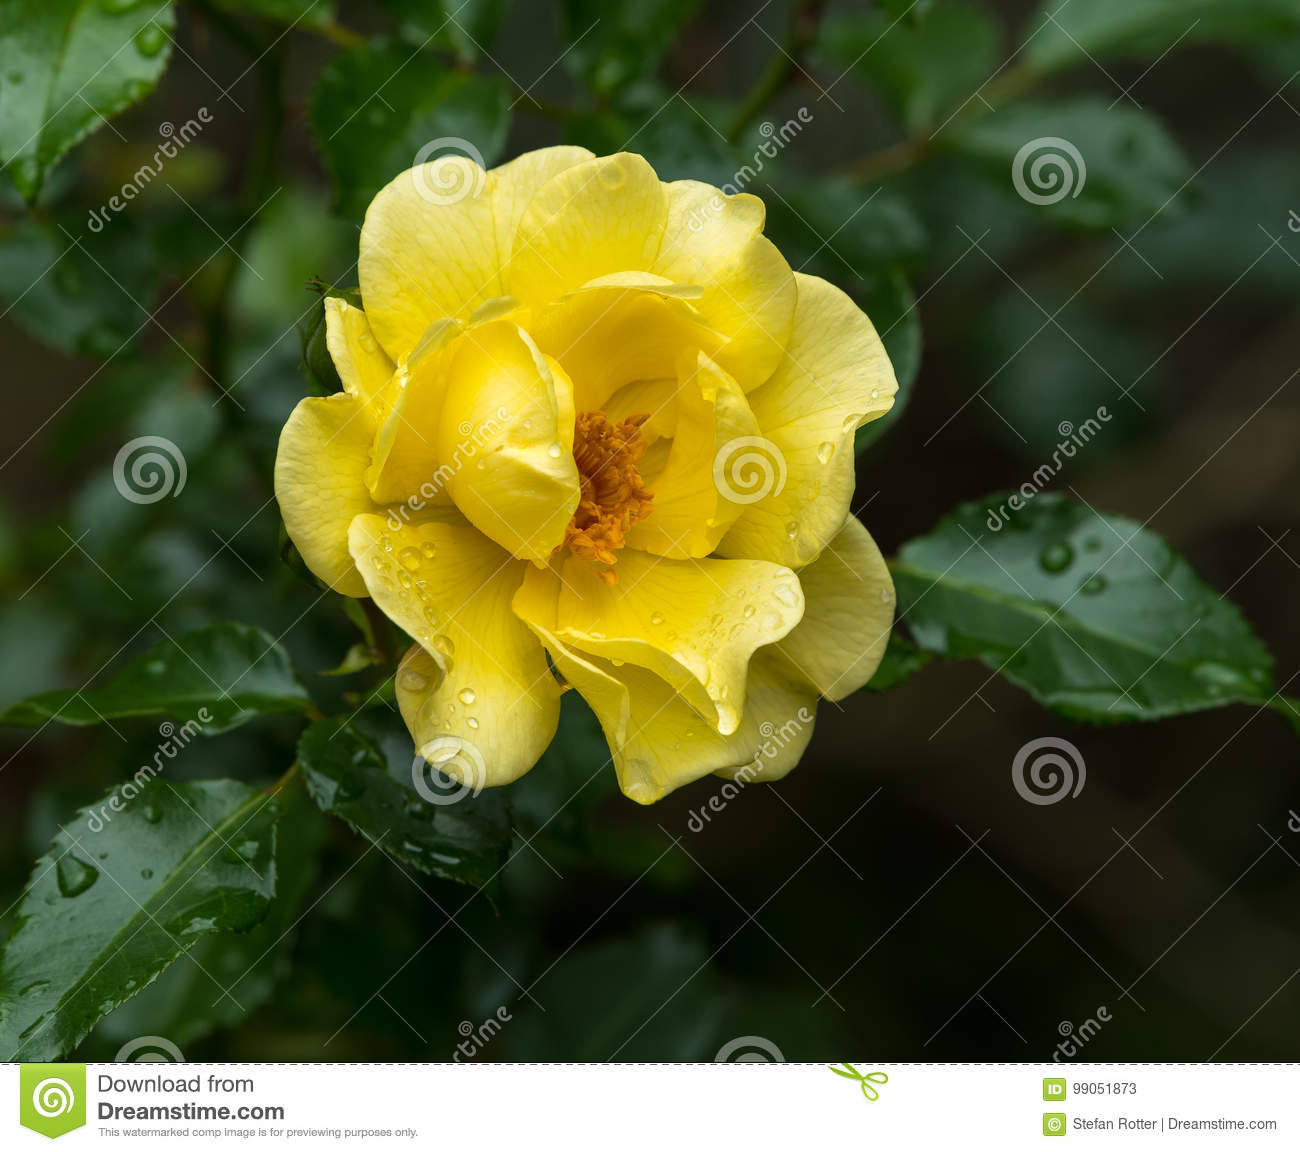 Download Blossom Of A Yellow Rose With Water Drops Stock Image - Image of perfume, botanical: 99051873